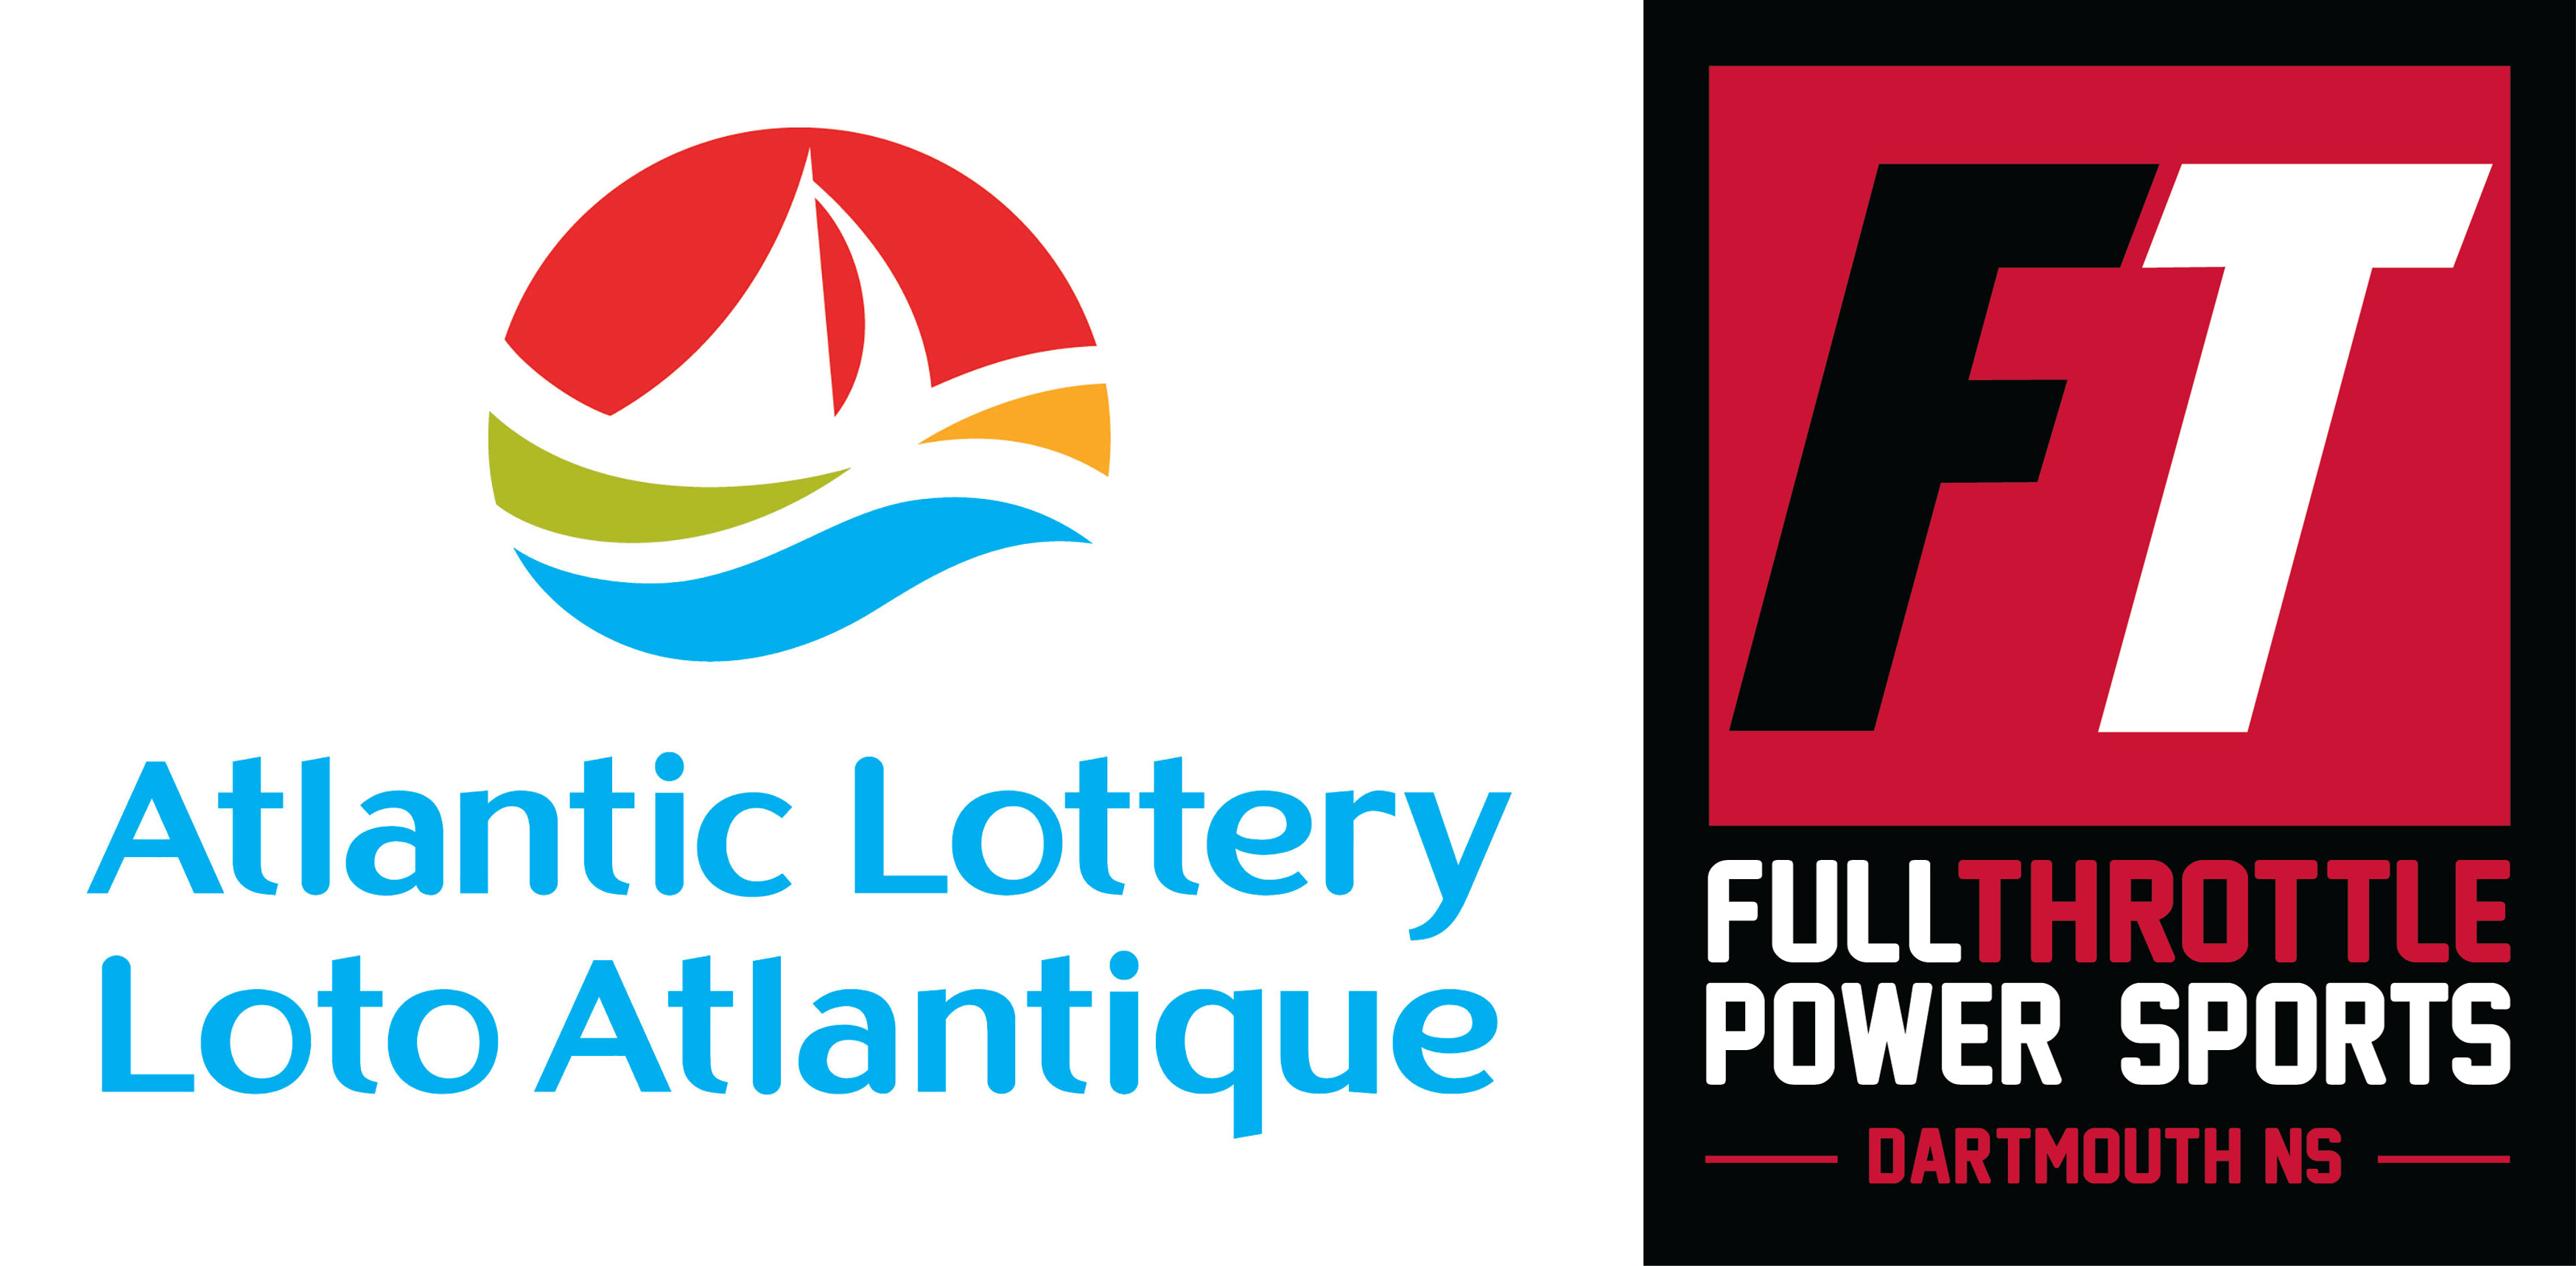 Atlantic Lottery and Full Throttle